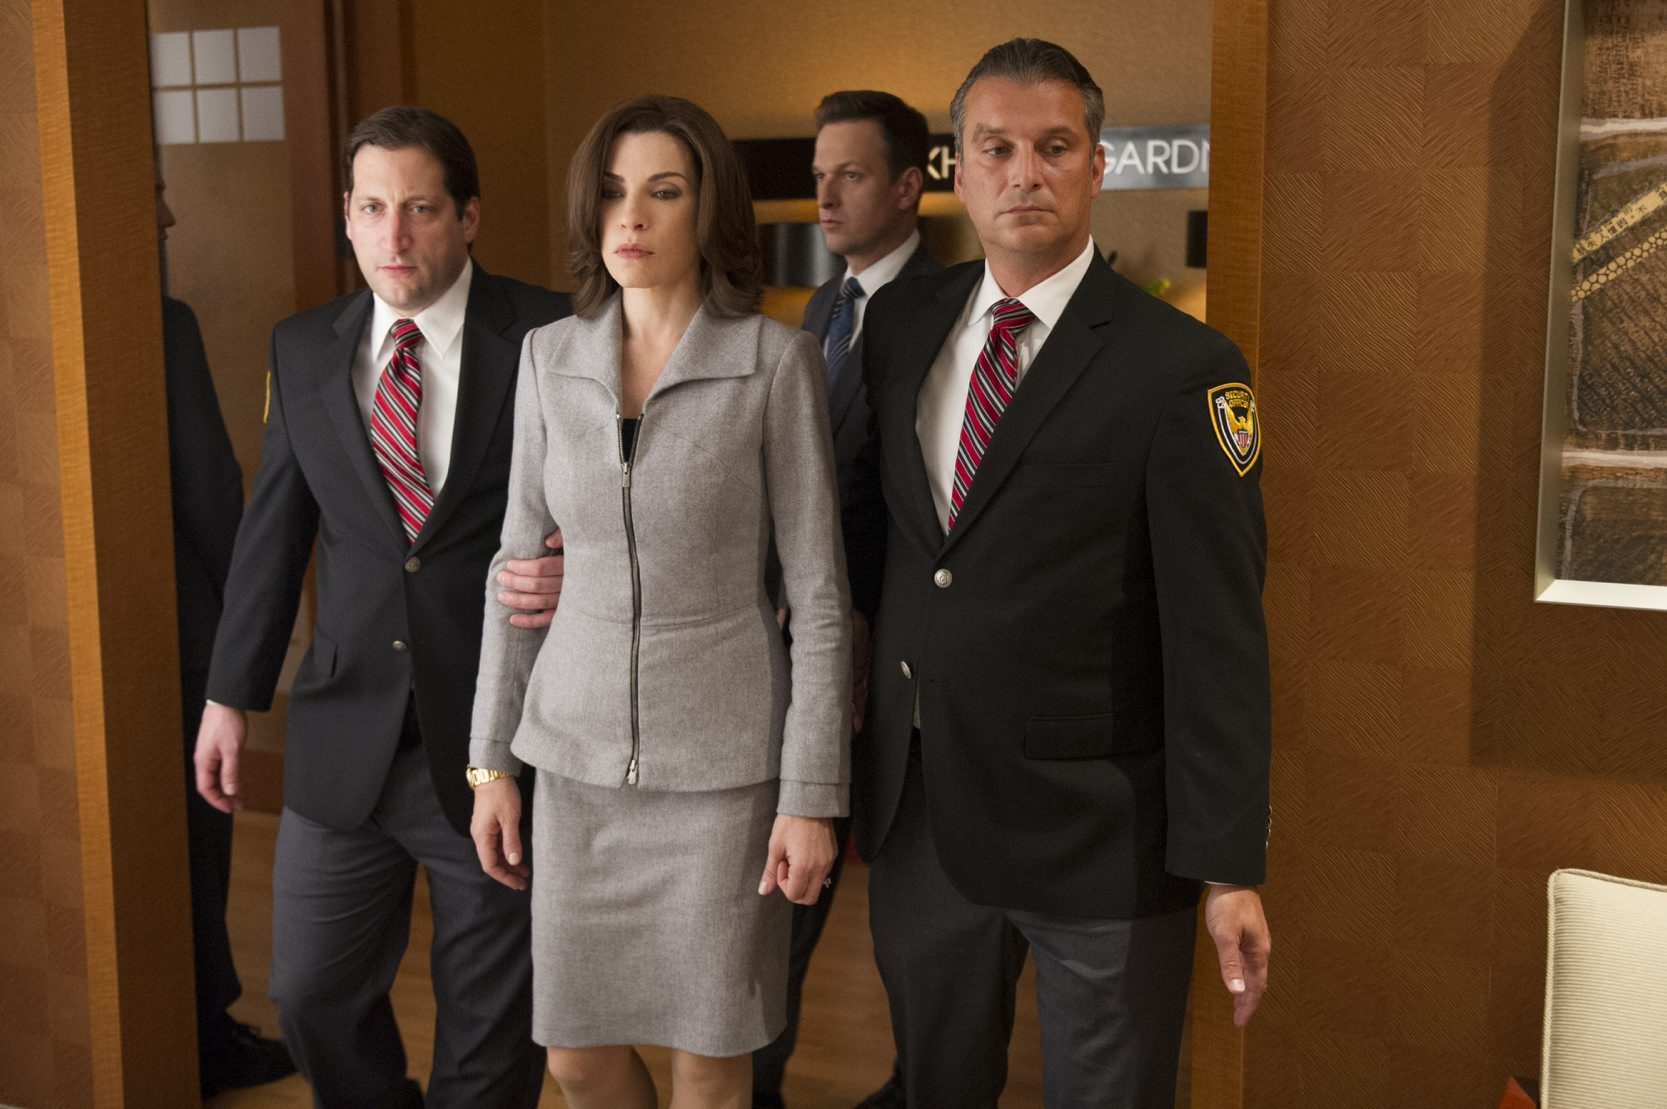 """Things started heating up again when Alicia Florrick (Julianna Margulies) got tossed out of Will Gardner's law firm on """"The Good Wife,"""" which airs at 9 p.m. Sundays on CBS."""